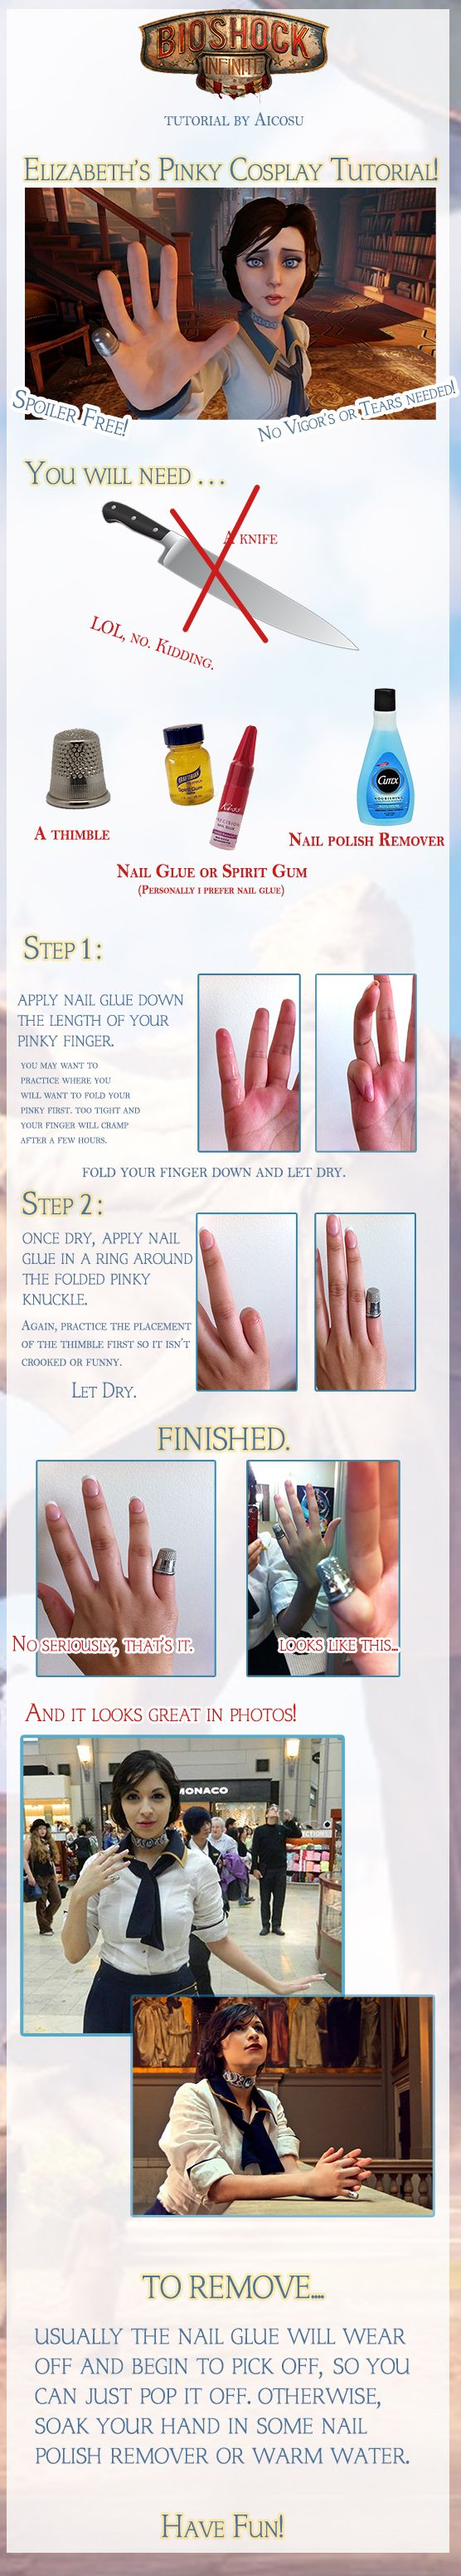 Bioshock Cosplay - Elizabeths Pinky Tutorial by *Aicosu on deviantART ---To complete the look